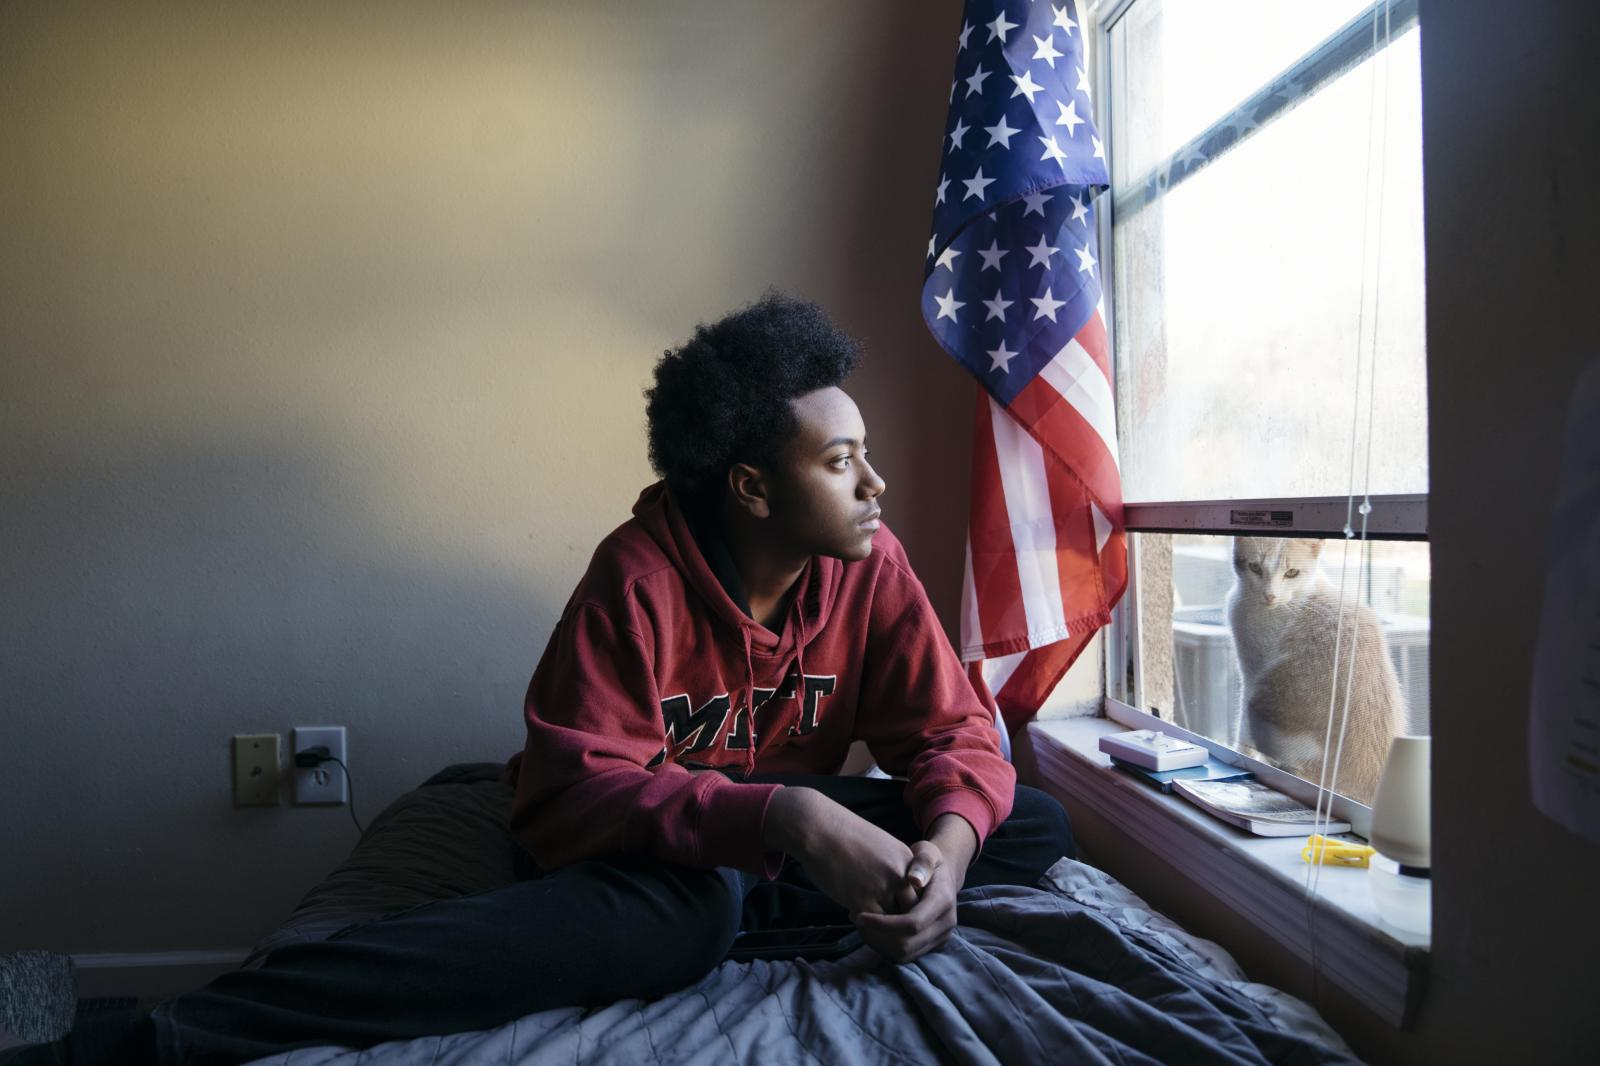 Nyjal Mitchell, 16, plays video games in his bed room in Opelousas, Louisiana.